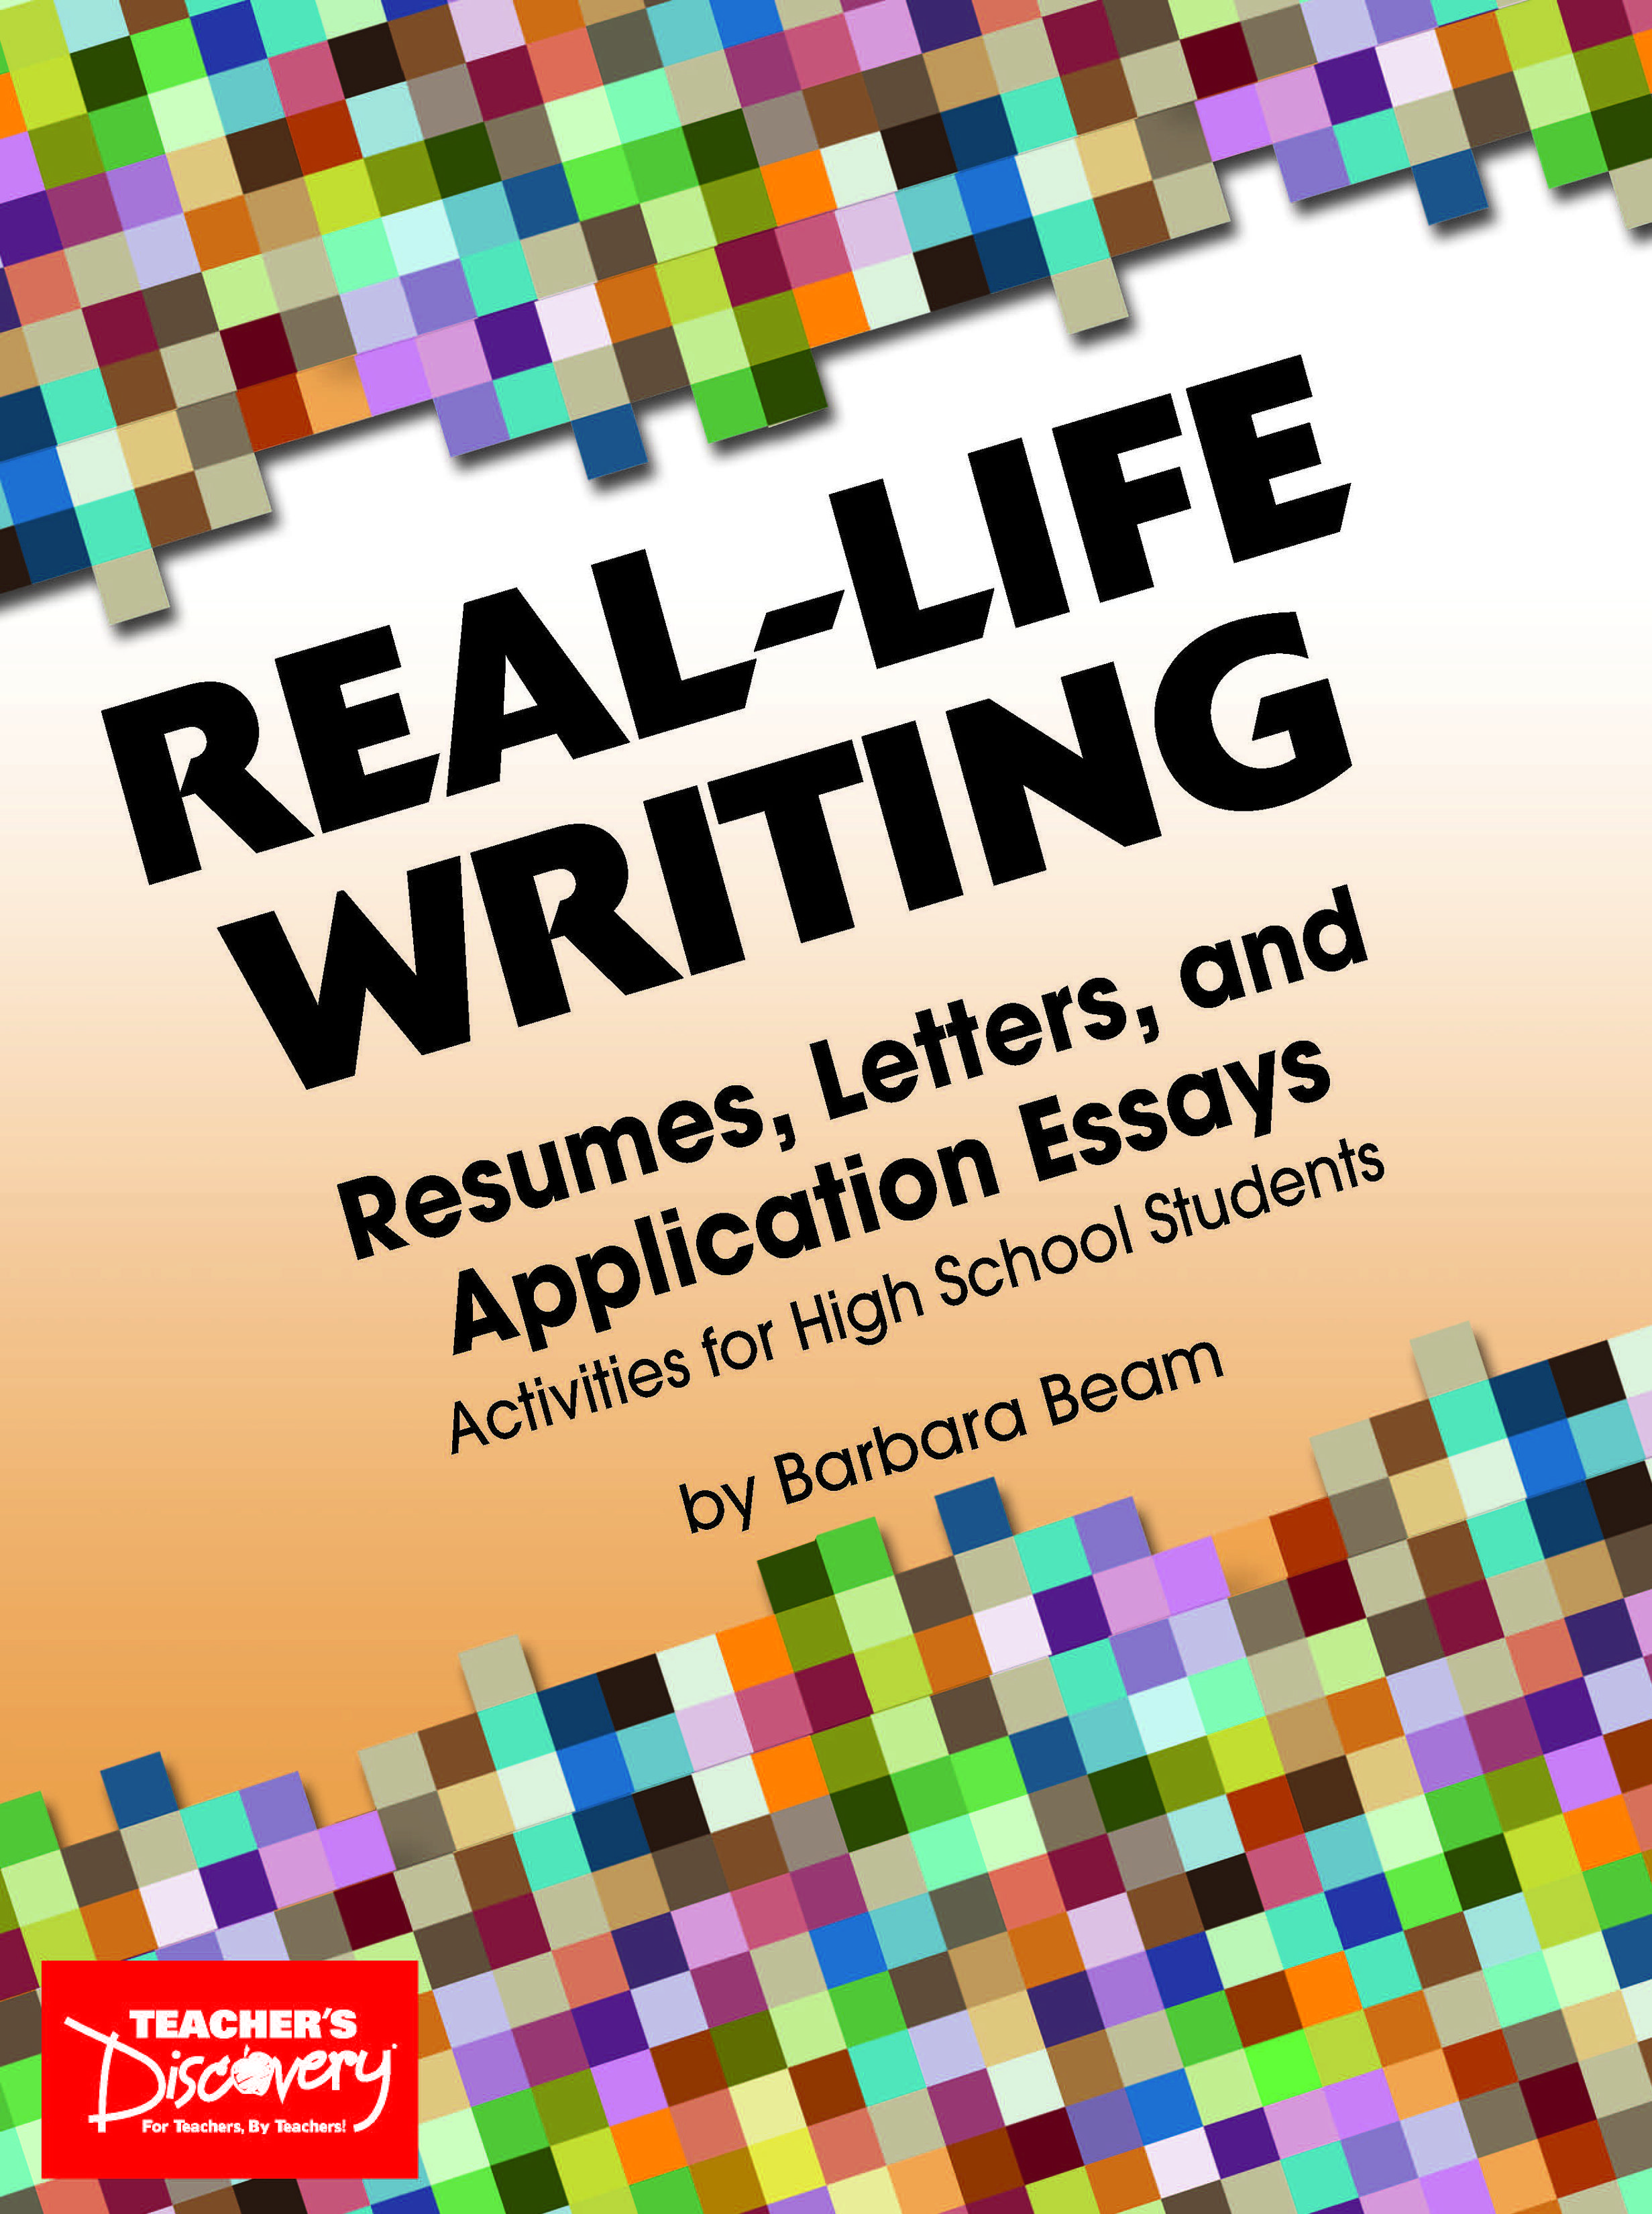 RealLife Writing Resumes, Letters, and Application